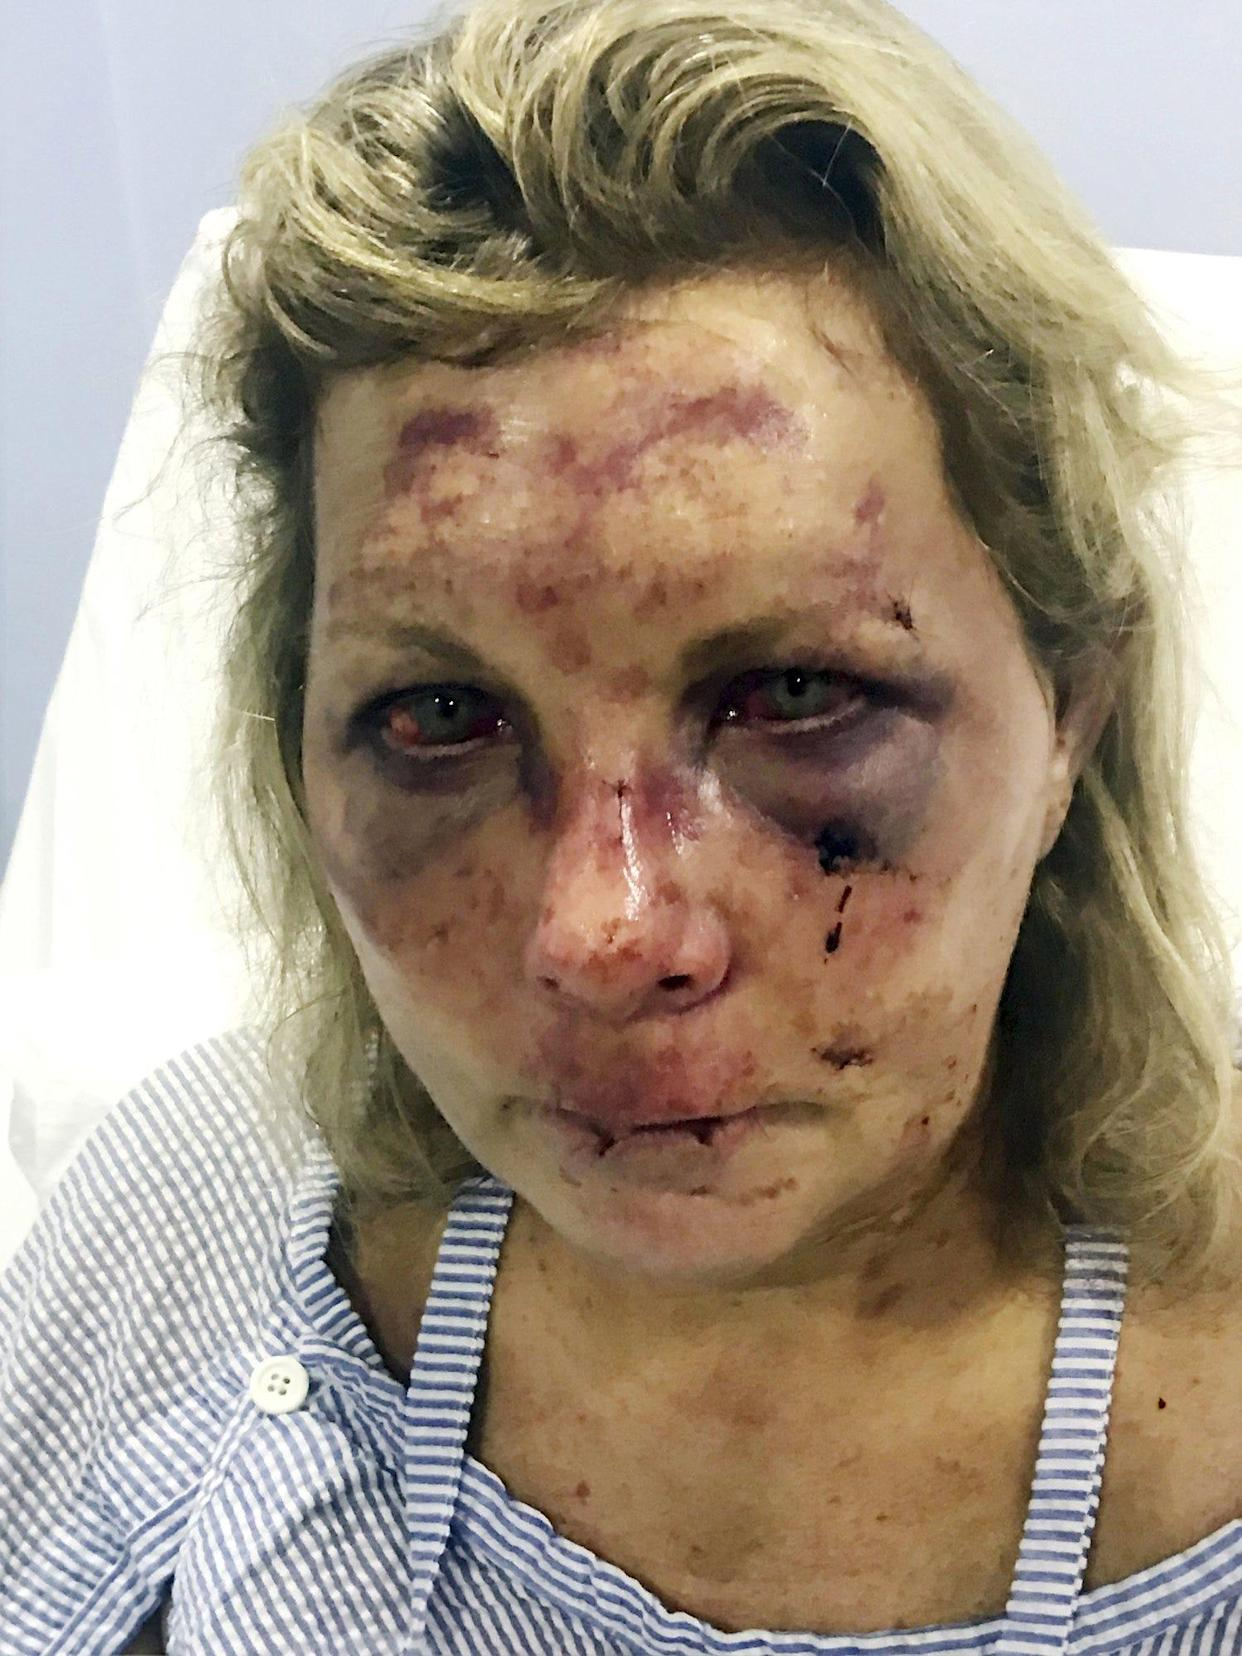 In this undated photo made available by Chris Daley, shows his wife Tammy Lawrence-Daley after an attack at a resort in Punta Cana, Dominican Republic in January 2019. Lawrence-Daley made the attack public on social media, detailing a vicious hours-long assault by a man she said was wearing the uniform of an all-inclusive resort.